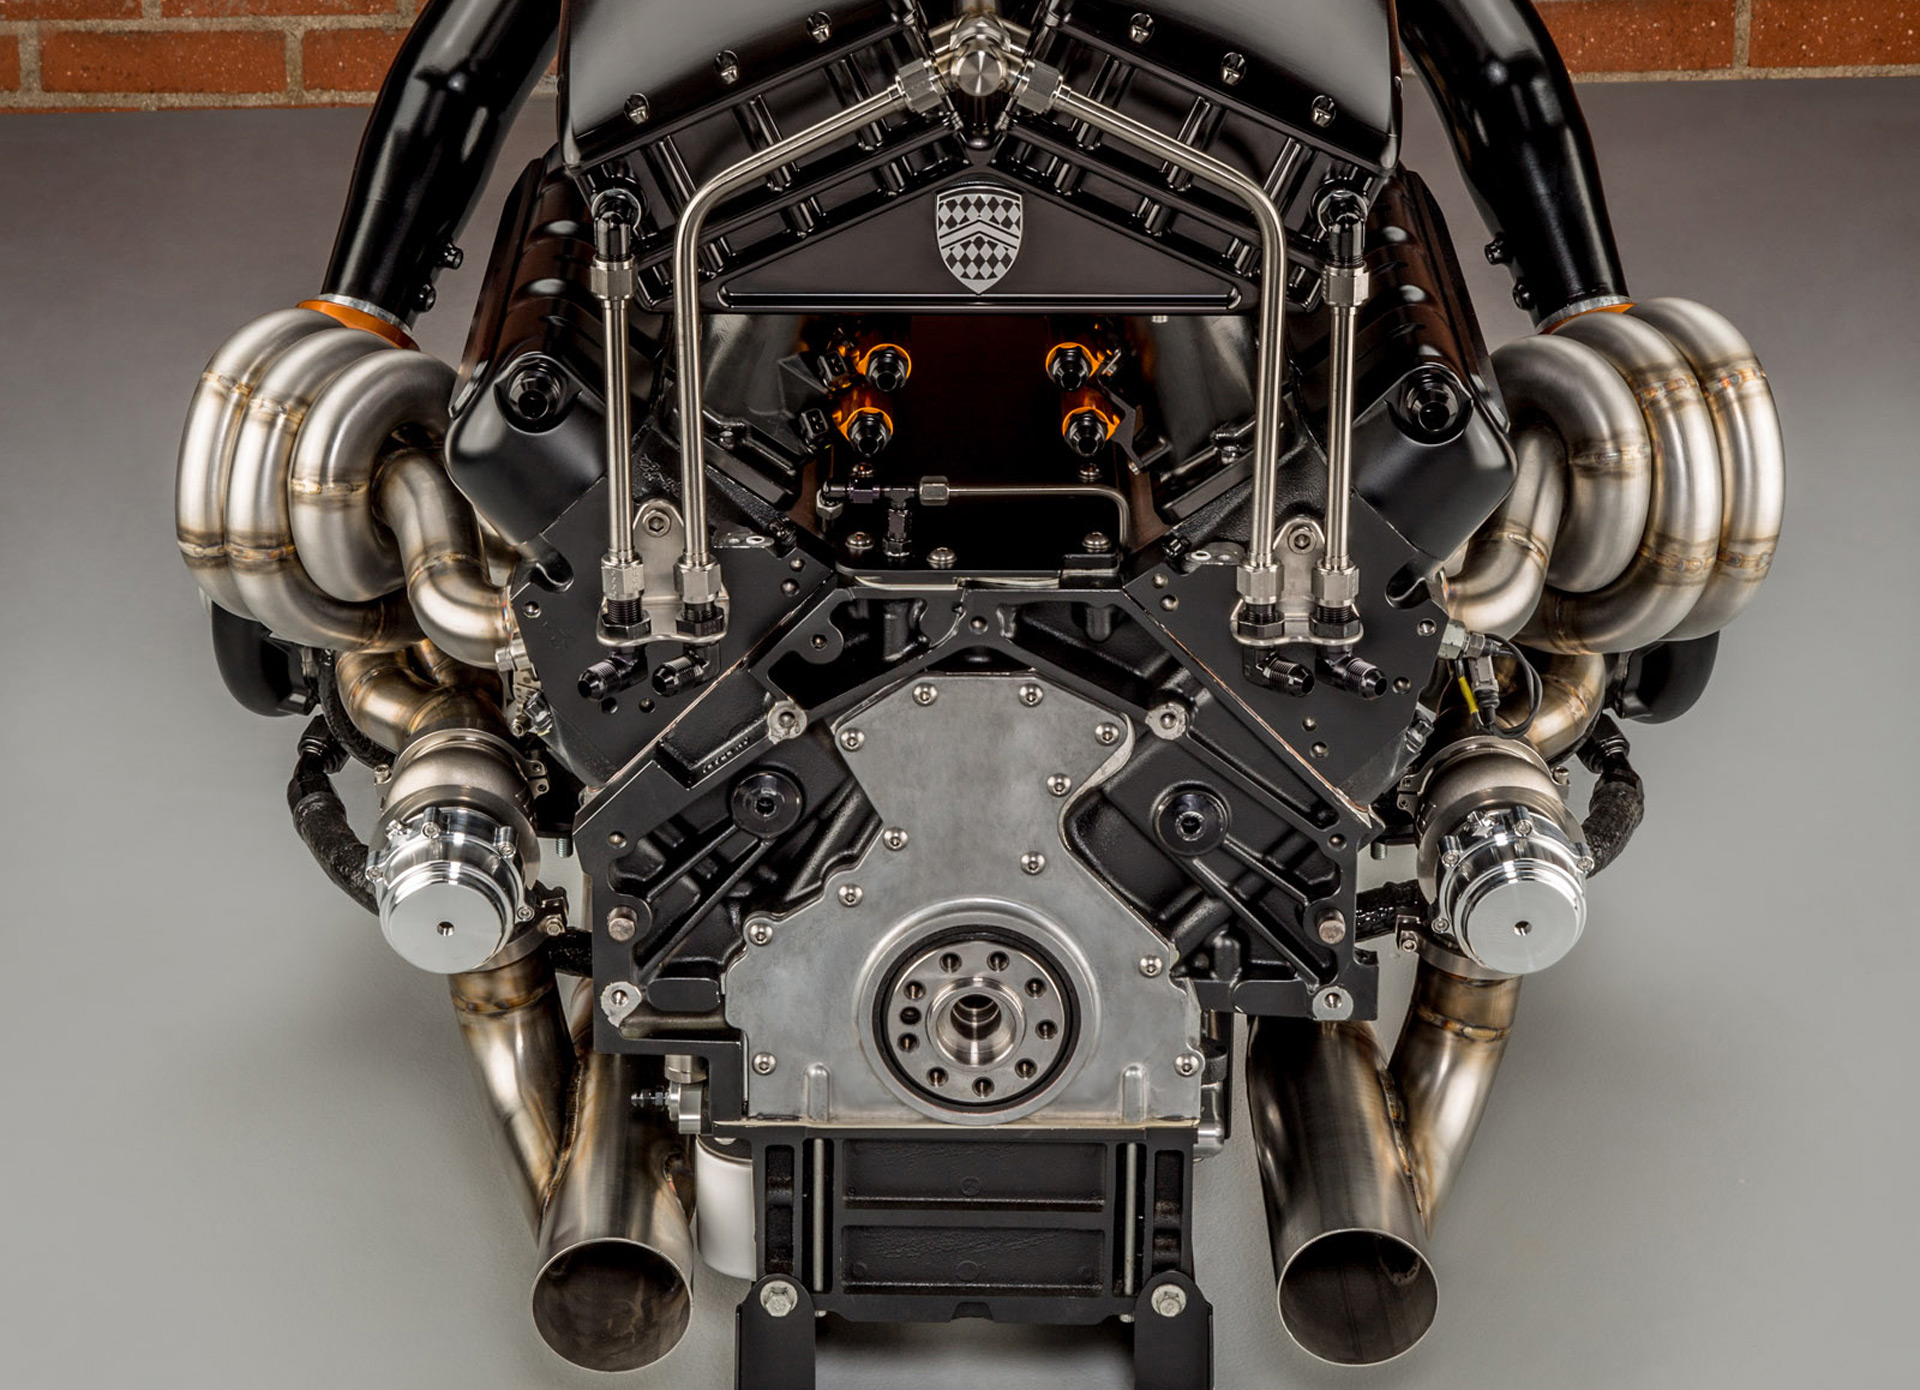 SSC_Tuatara_engine_0008